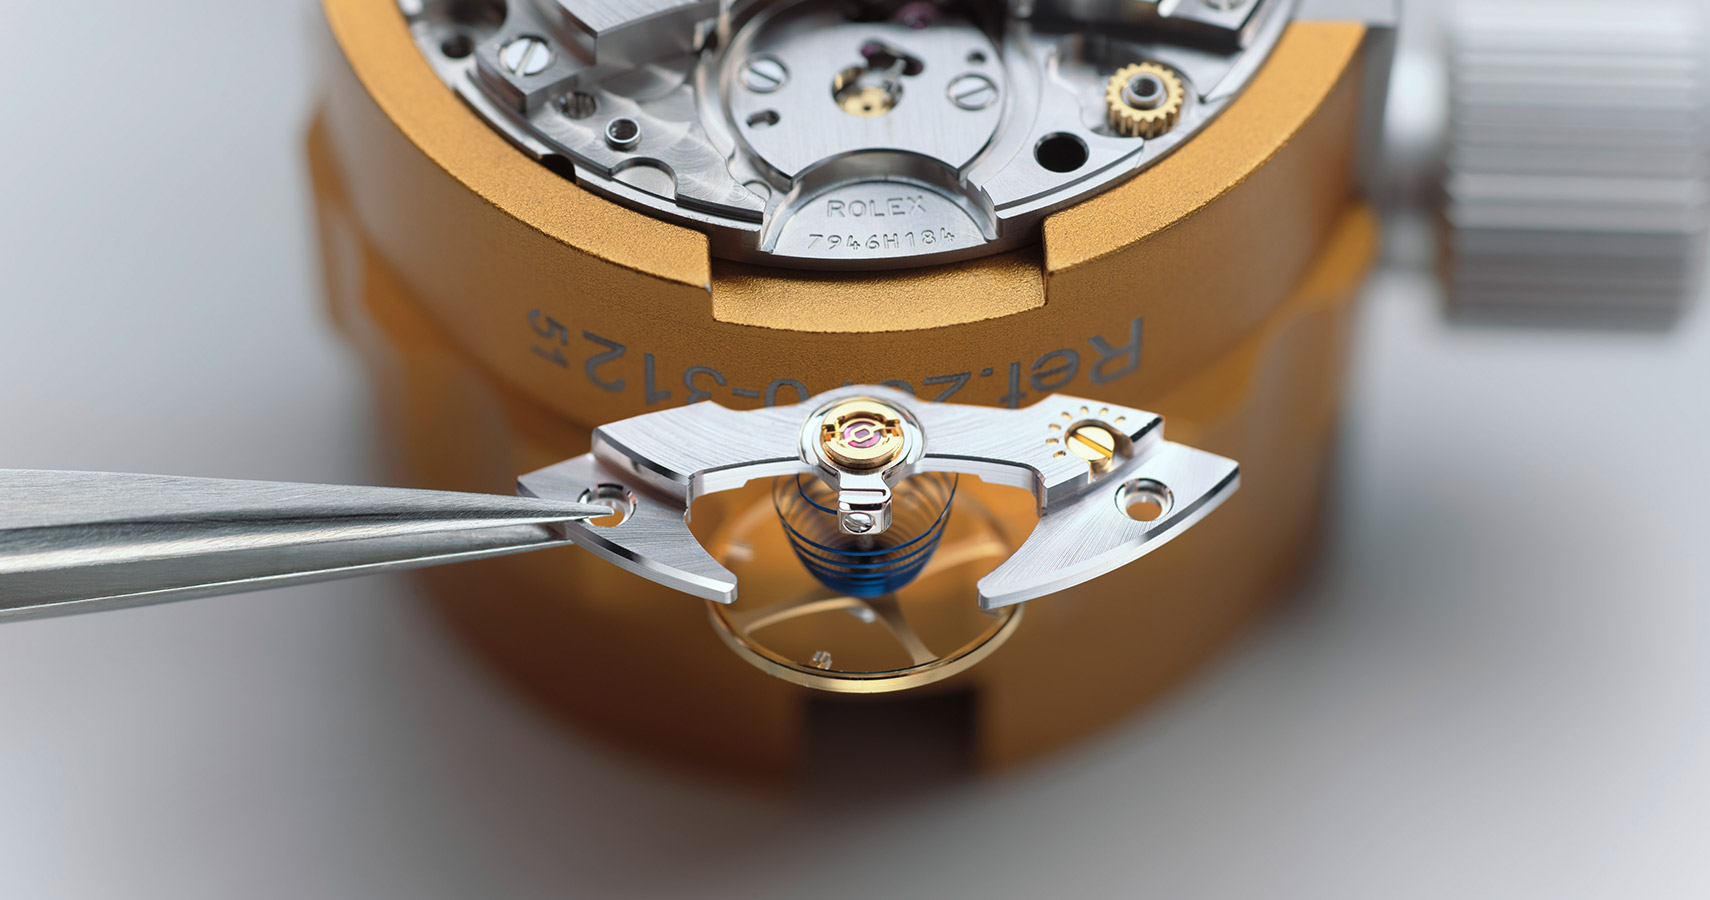 rolex-servicing-procedure-assembly-lubrication-of-the-movement